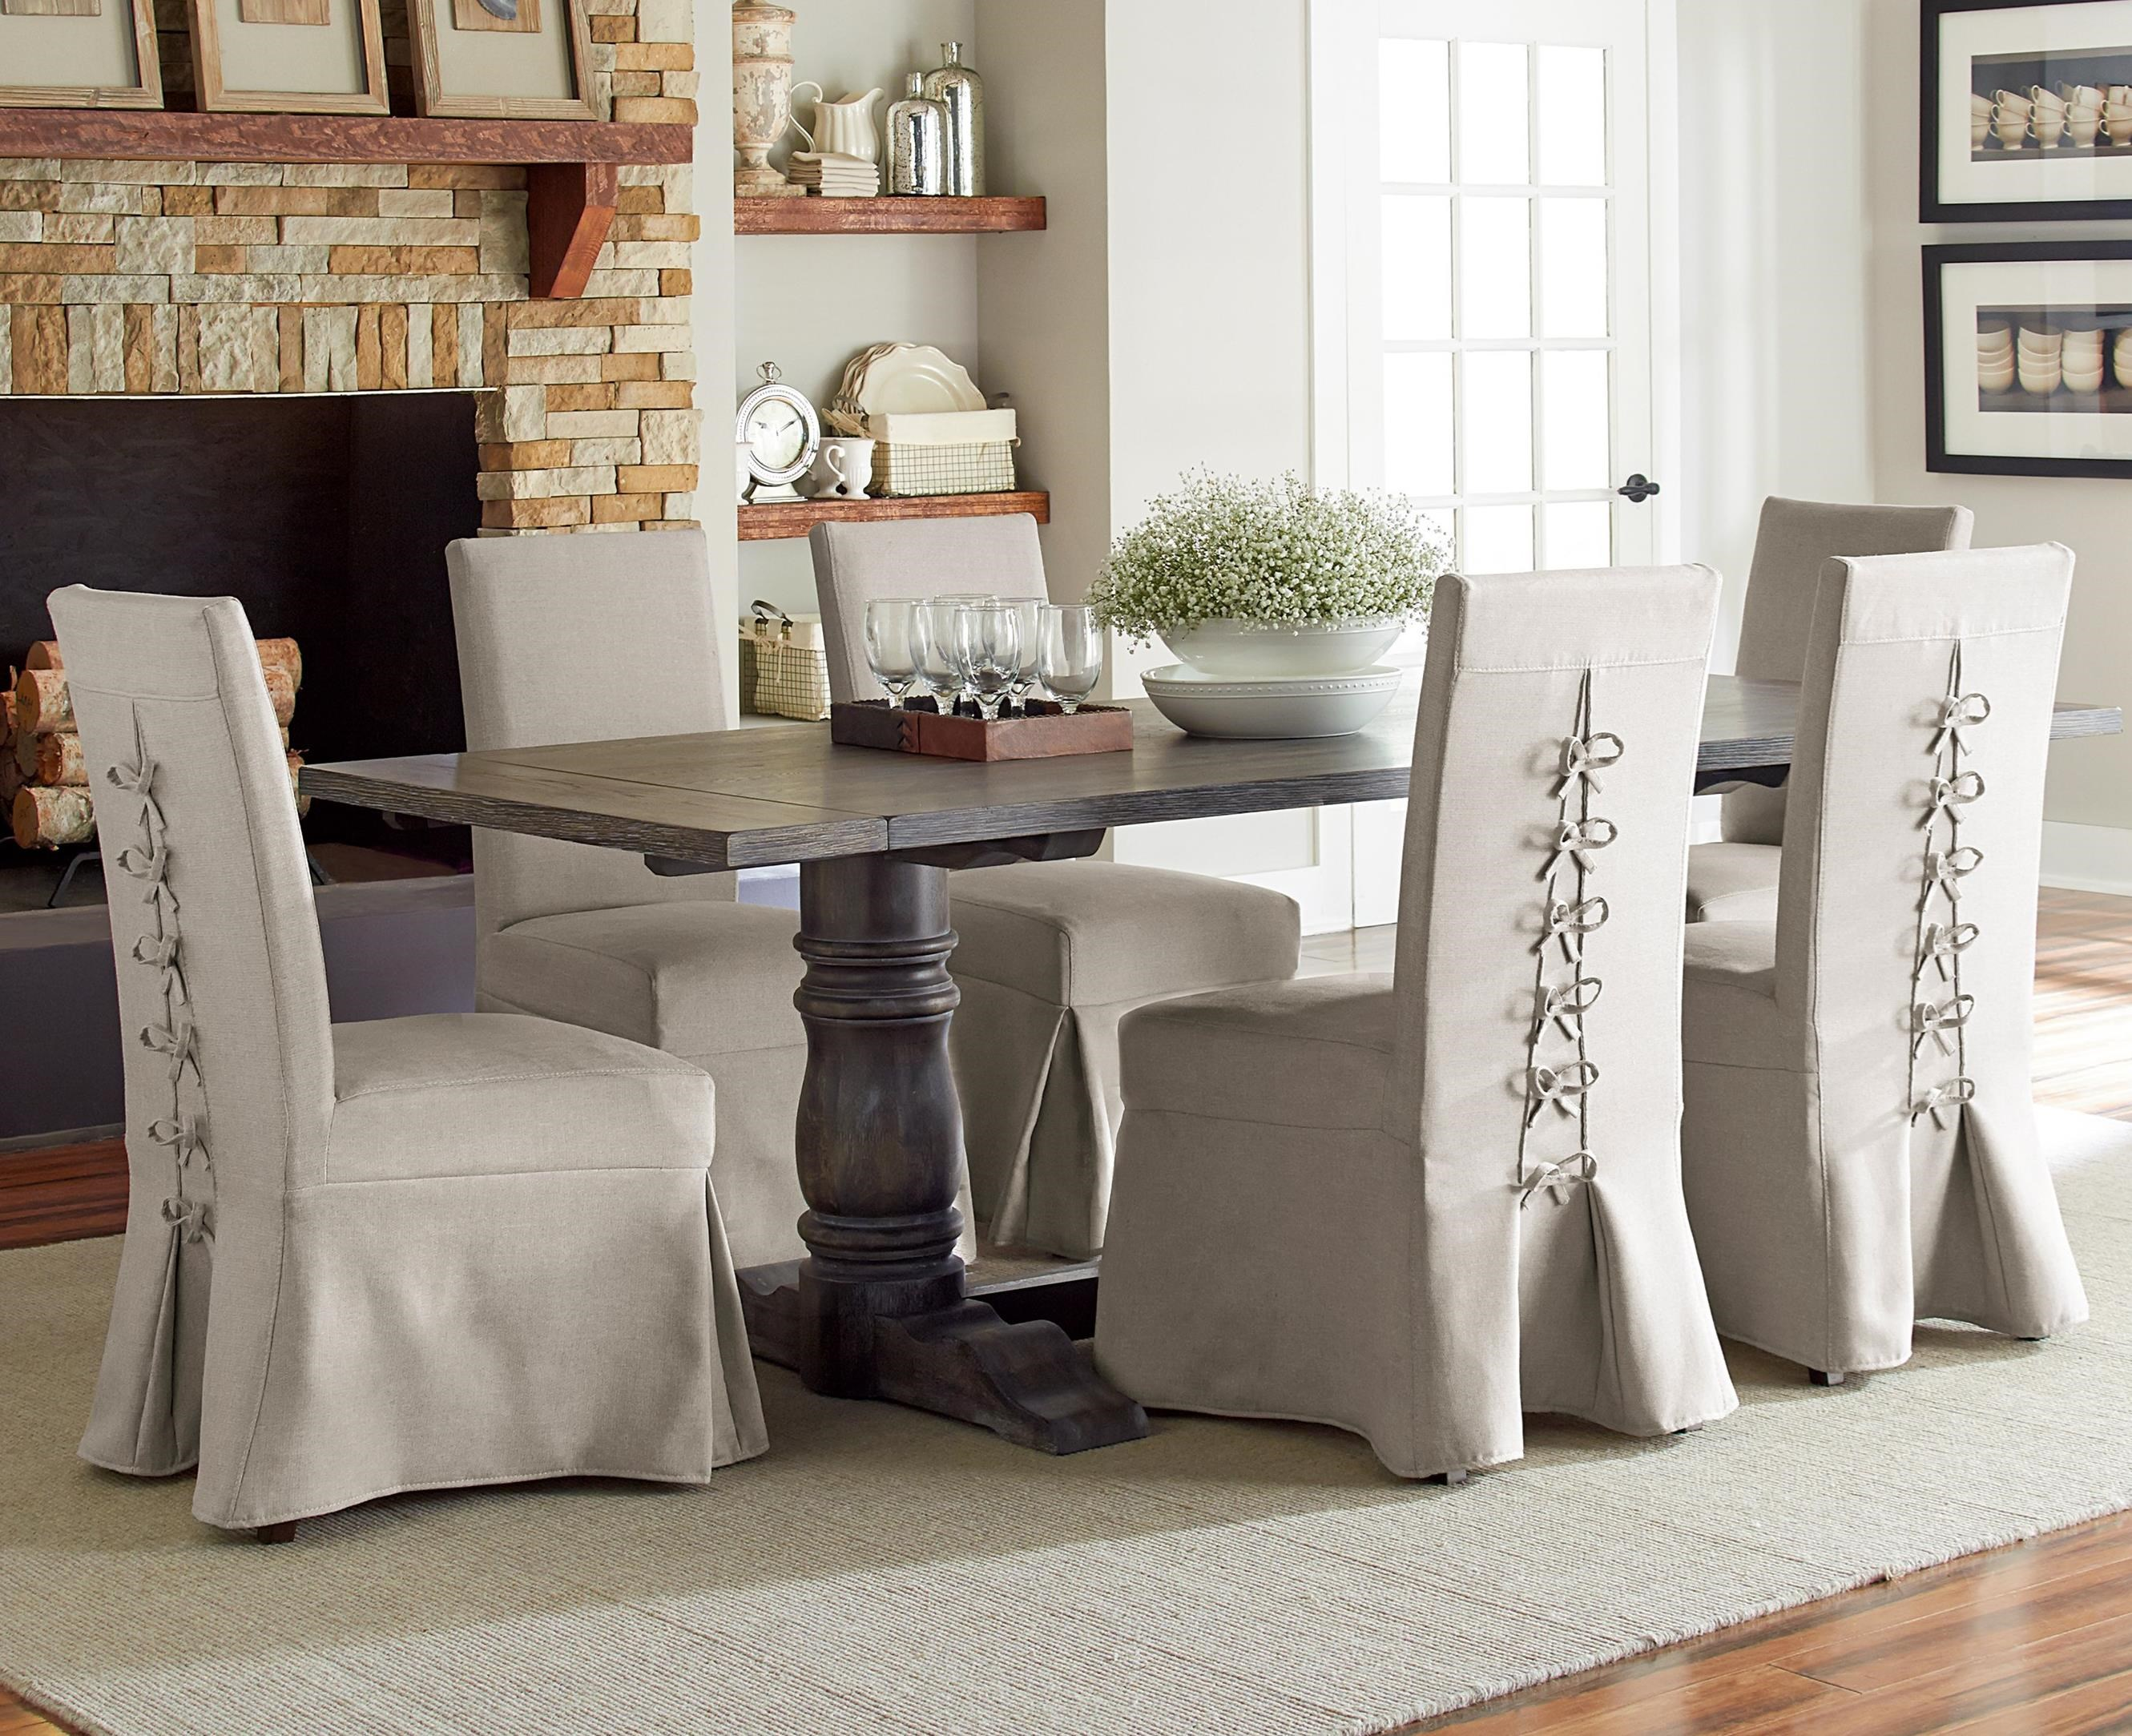 Muses 7-Piece Rectangular Dining Table Set by Progressive Furniture at Van Hill Furniture